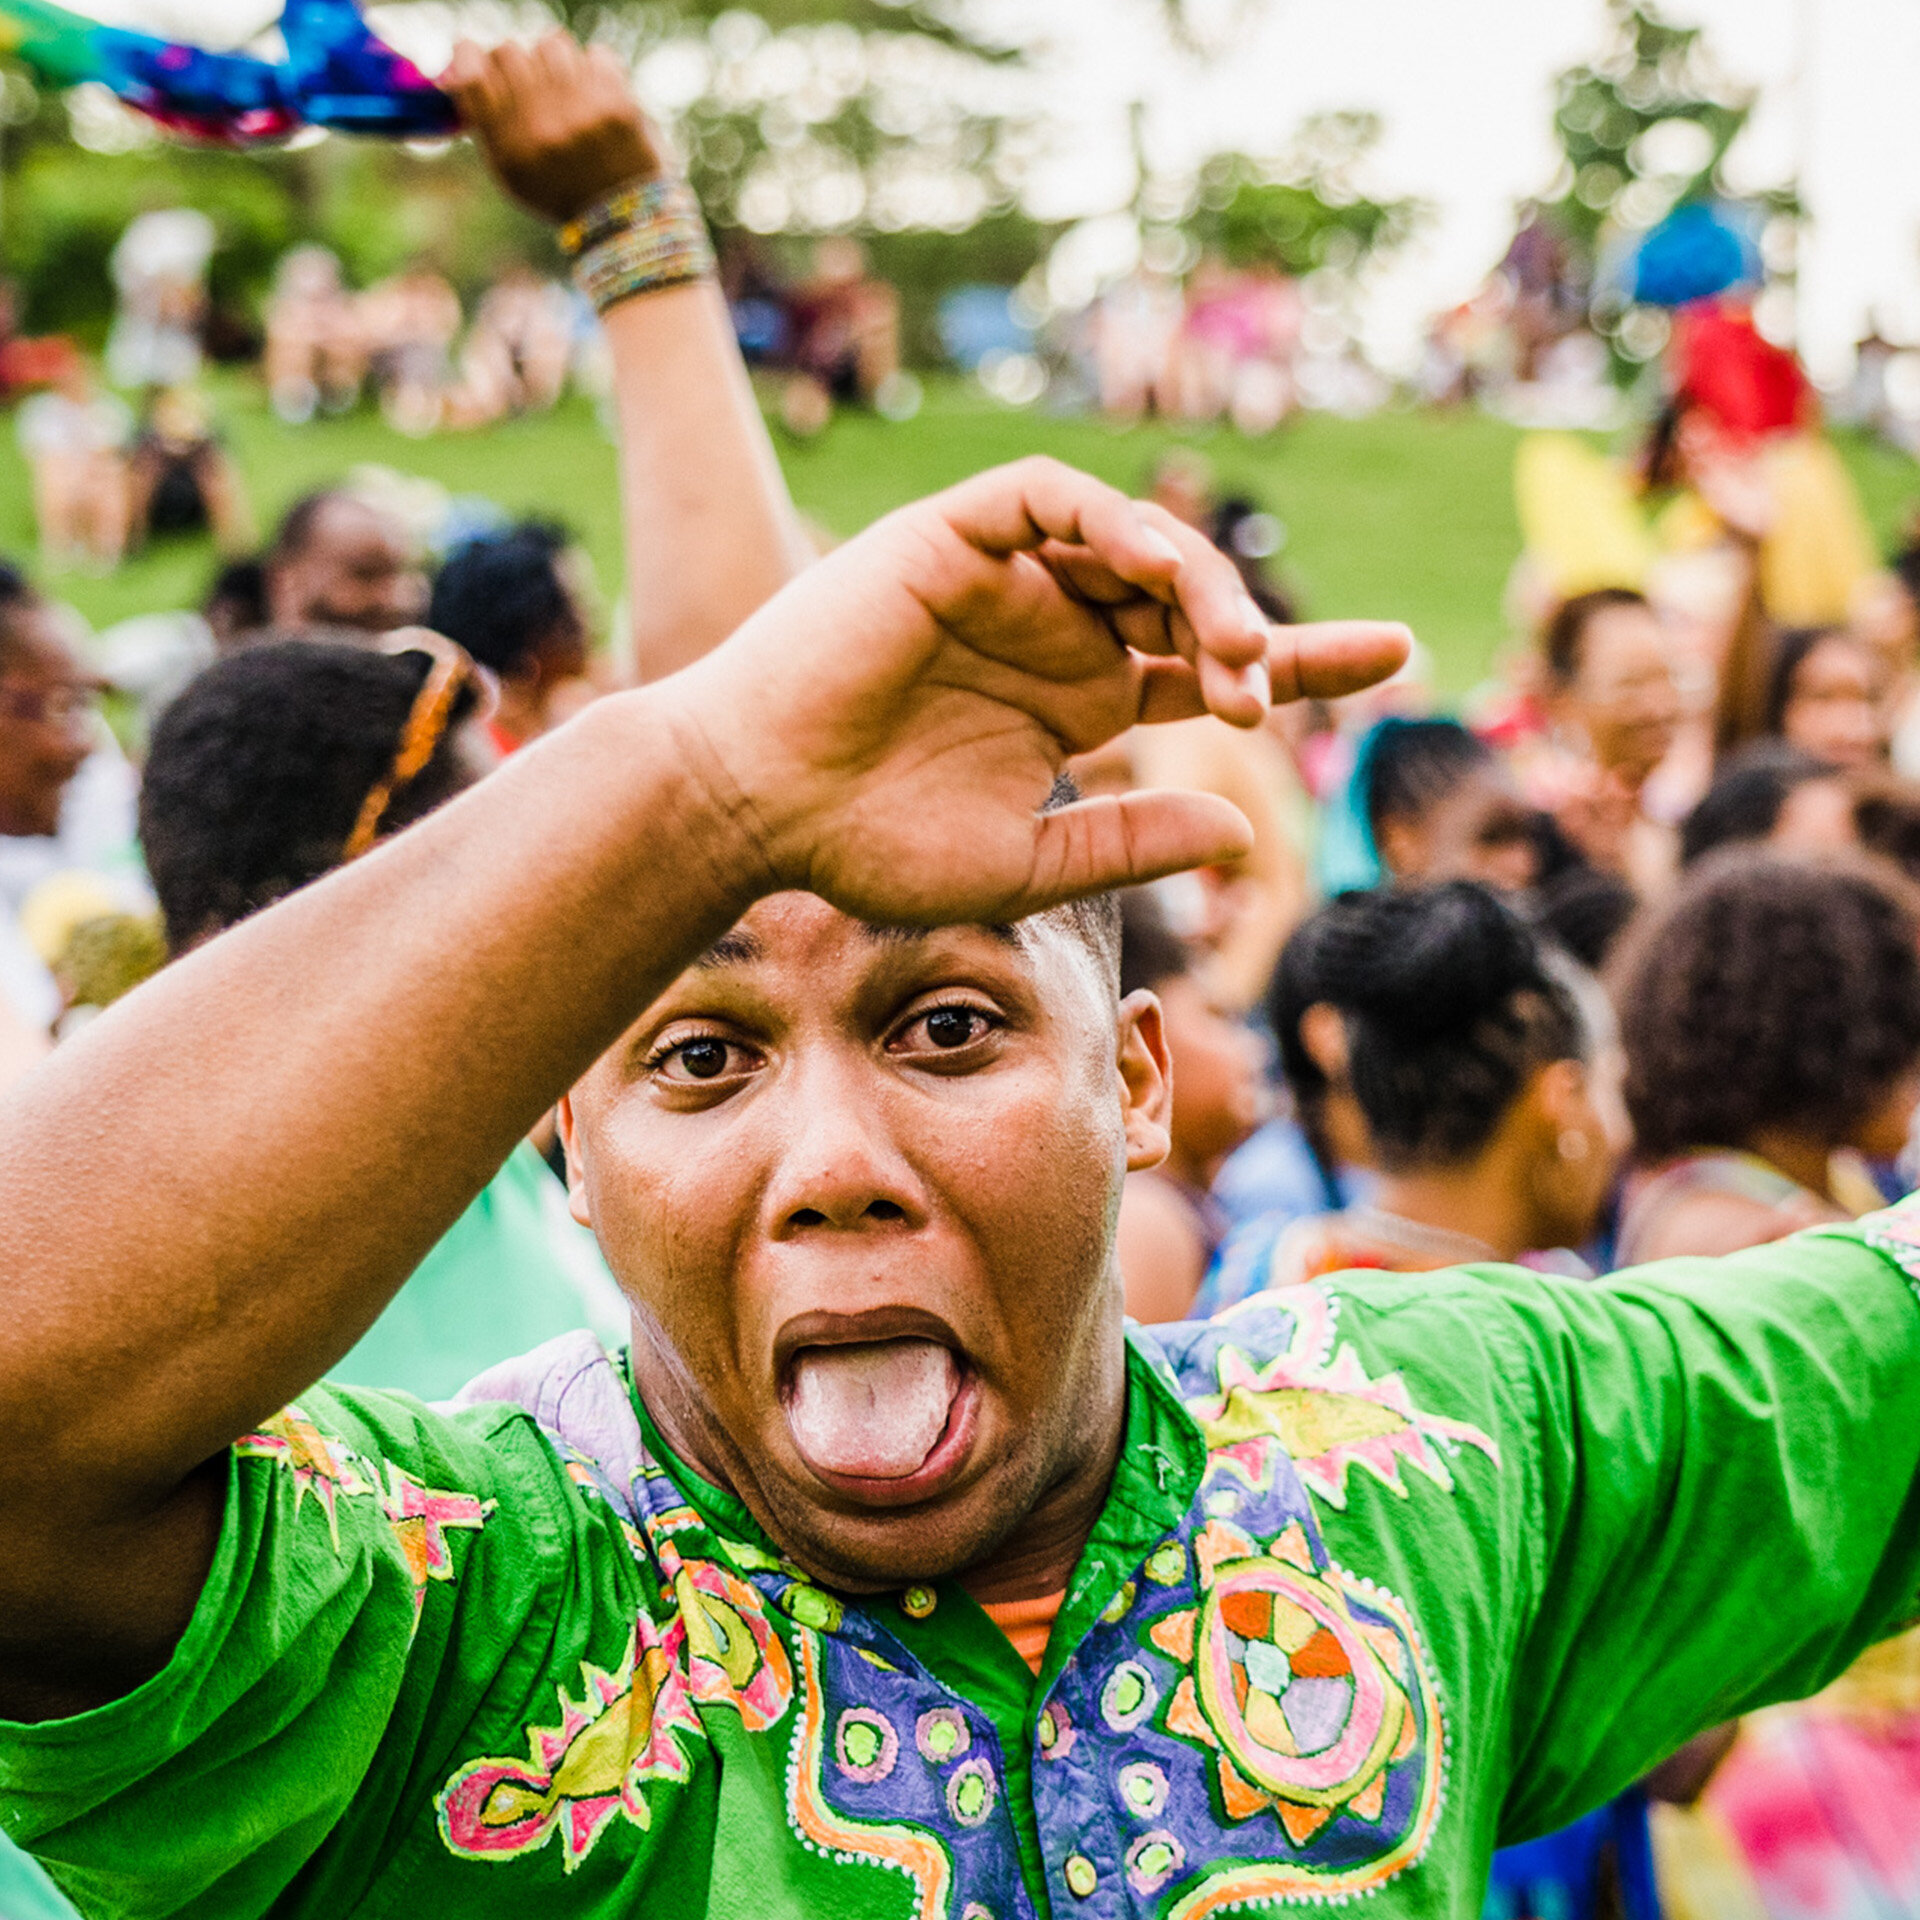 CULTURE - Caribbean Vibes Reggae Festival at The Gathering Place..